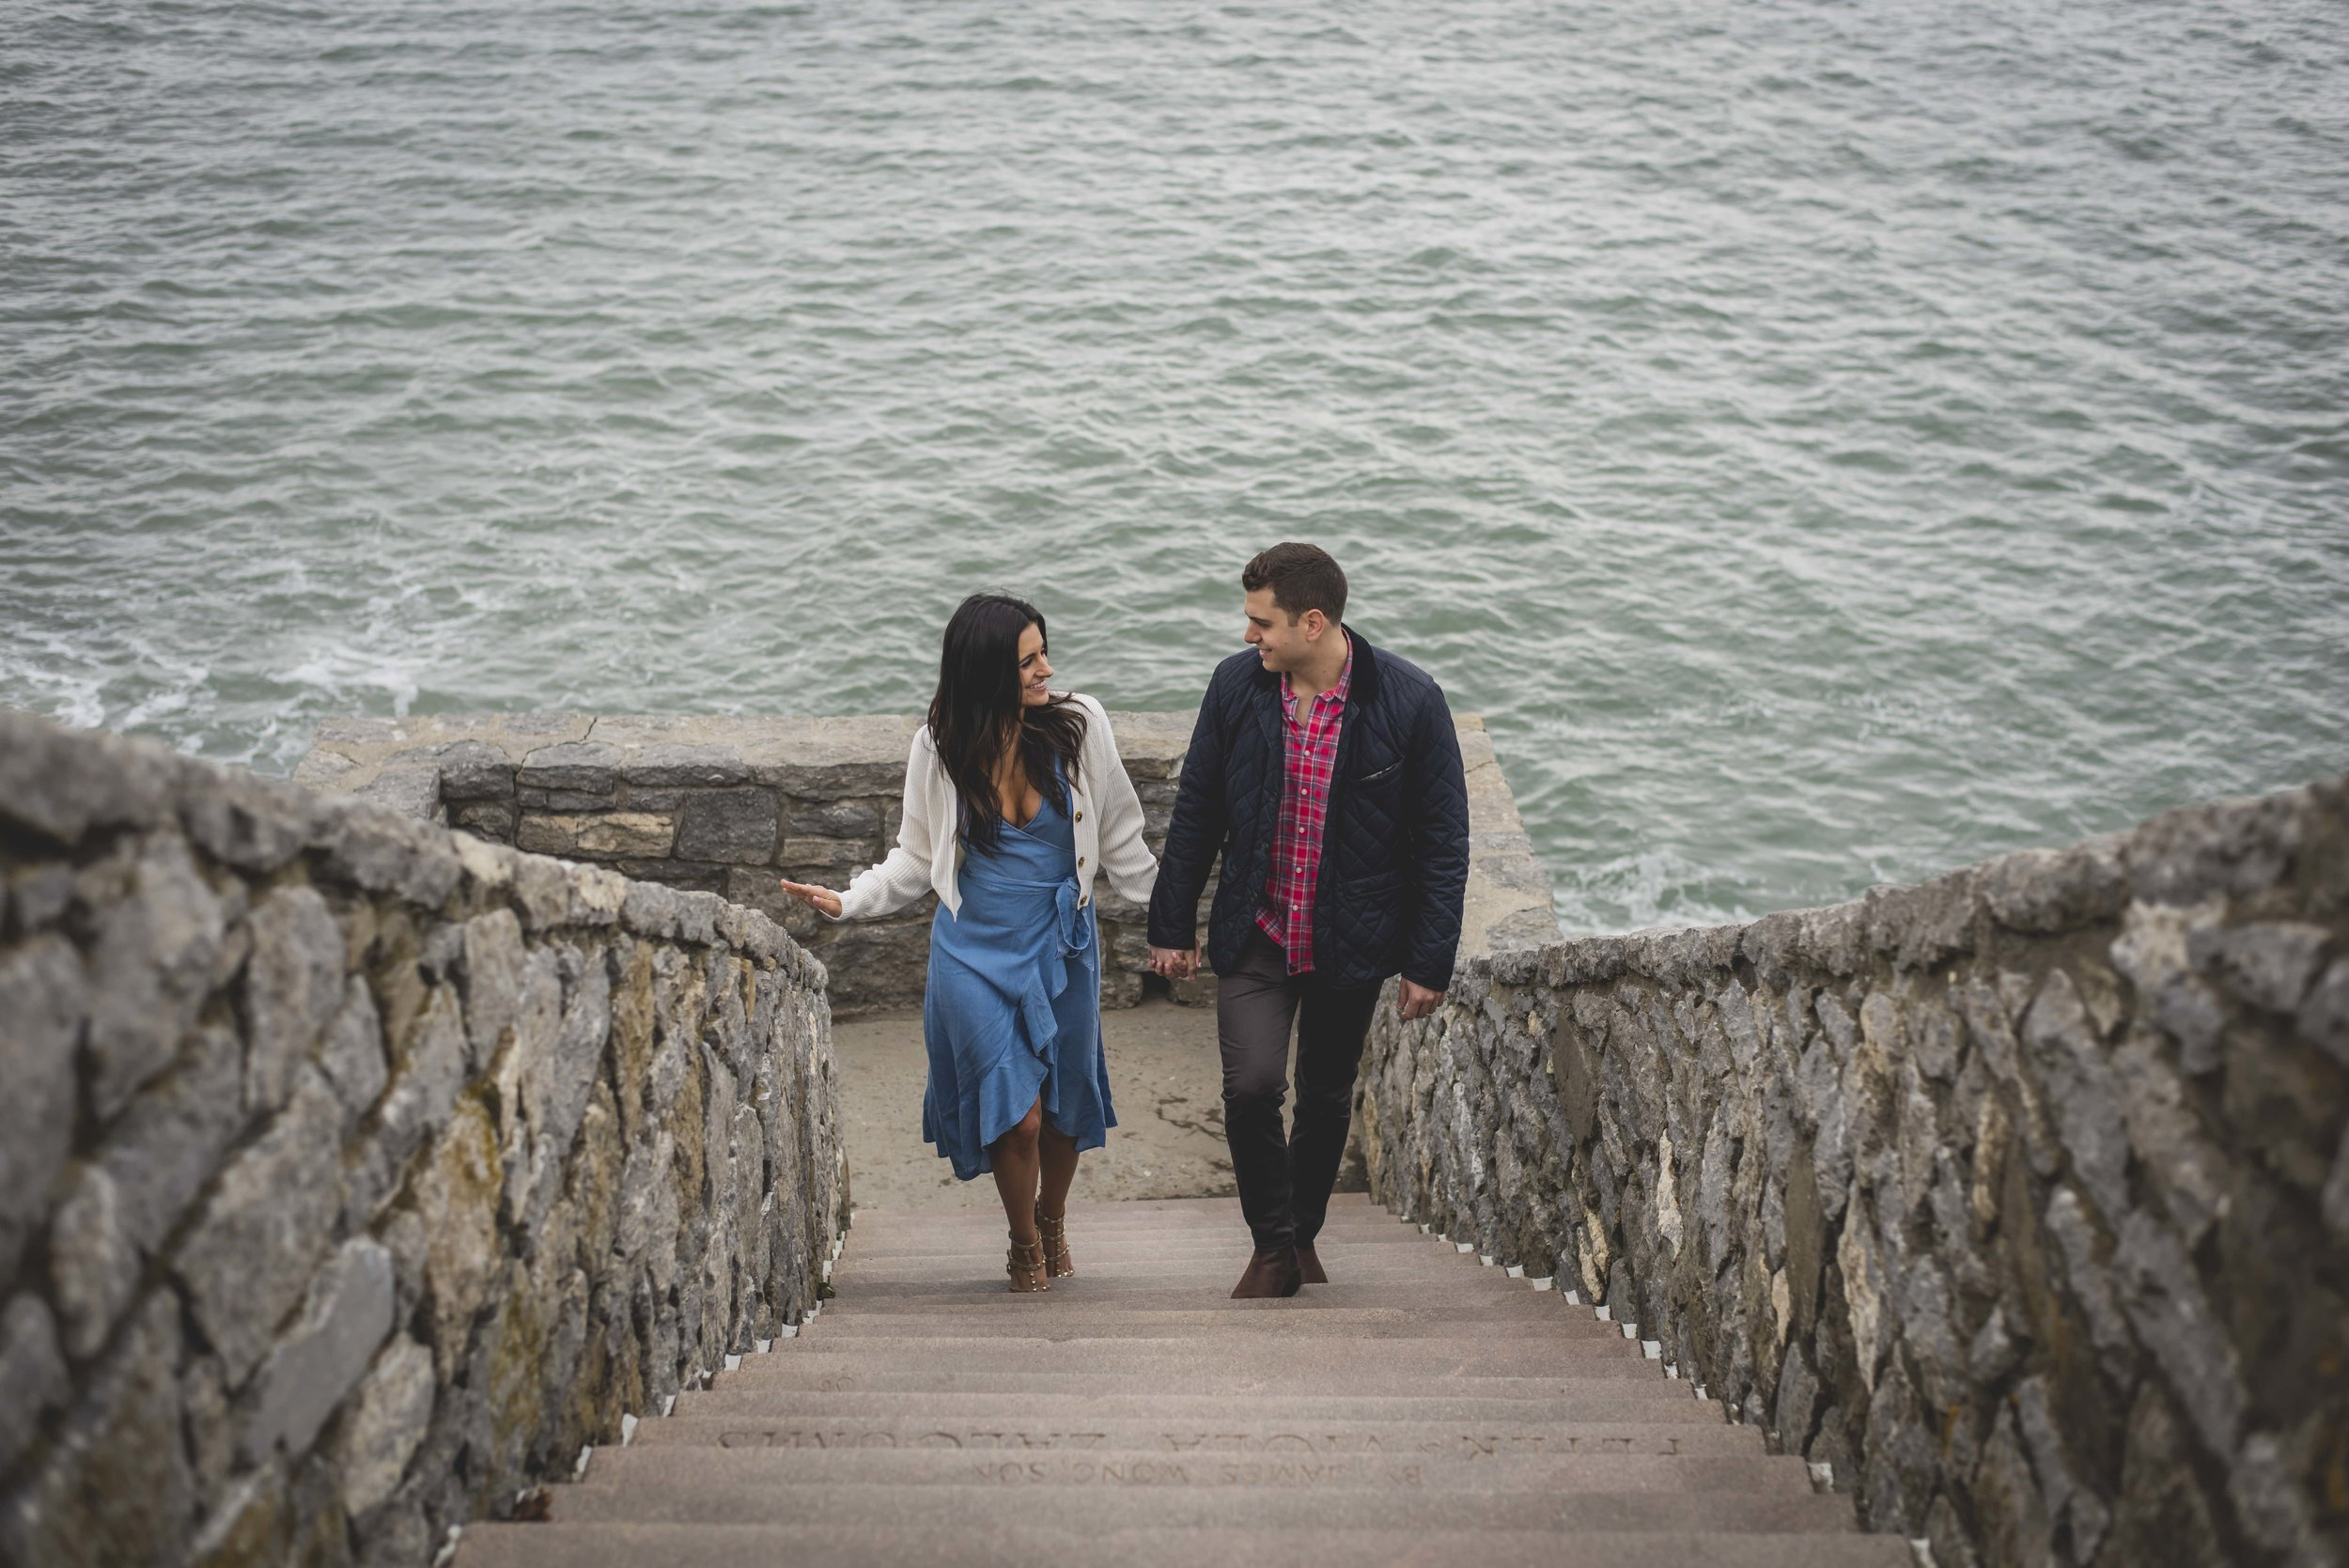 Engagement Photography Services - Castle Hill Lighthouse, Newport, RI - Couple walking hand in hand up stone stairs with the ocean behind them.